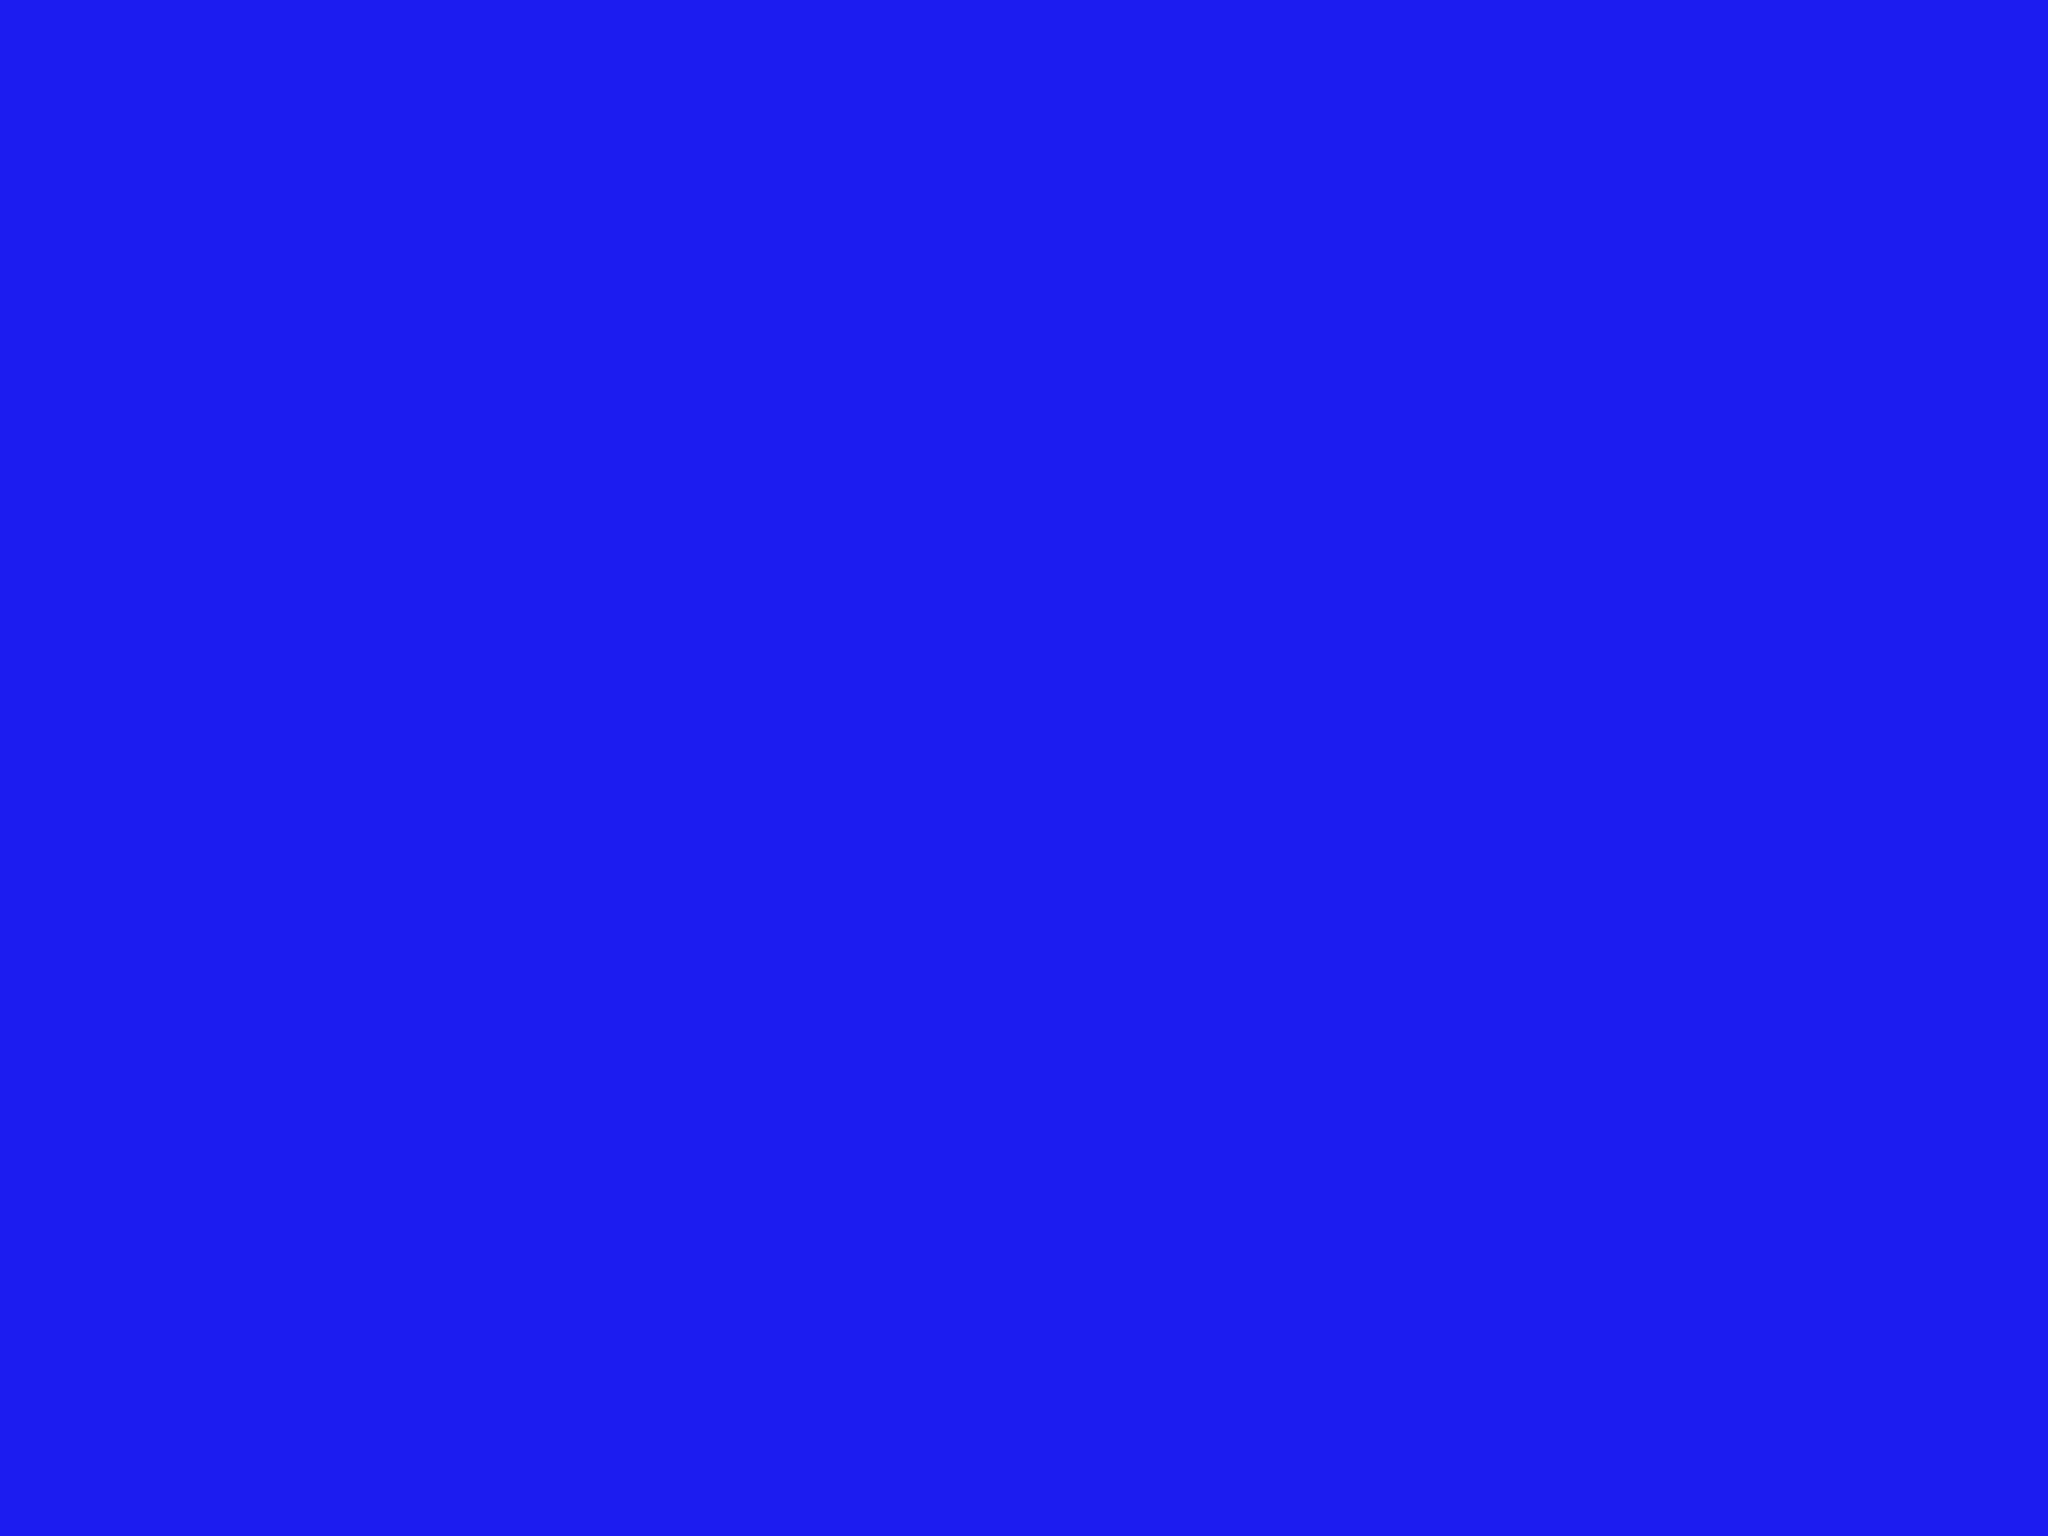 2048x1536 Bluebonnet Solid Color Background